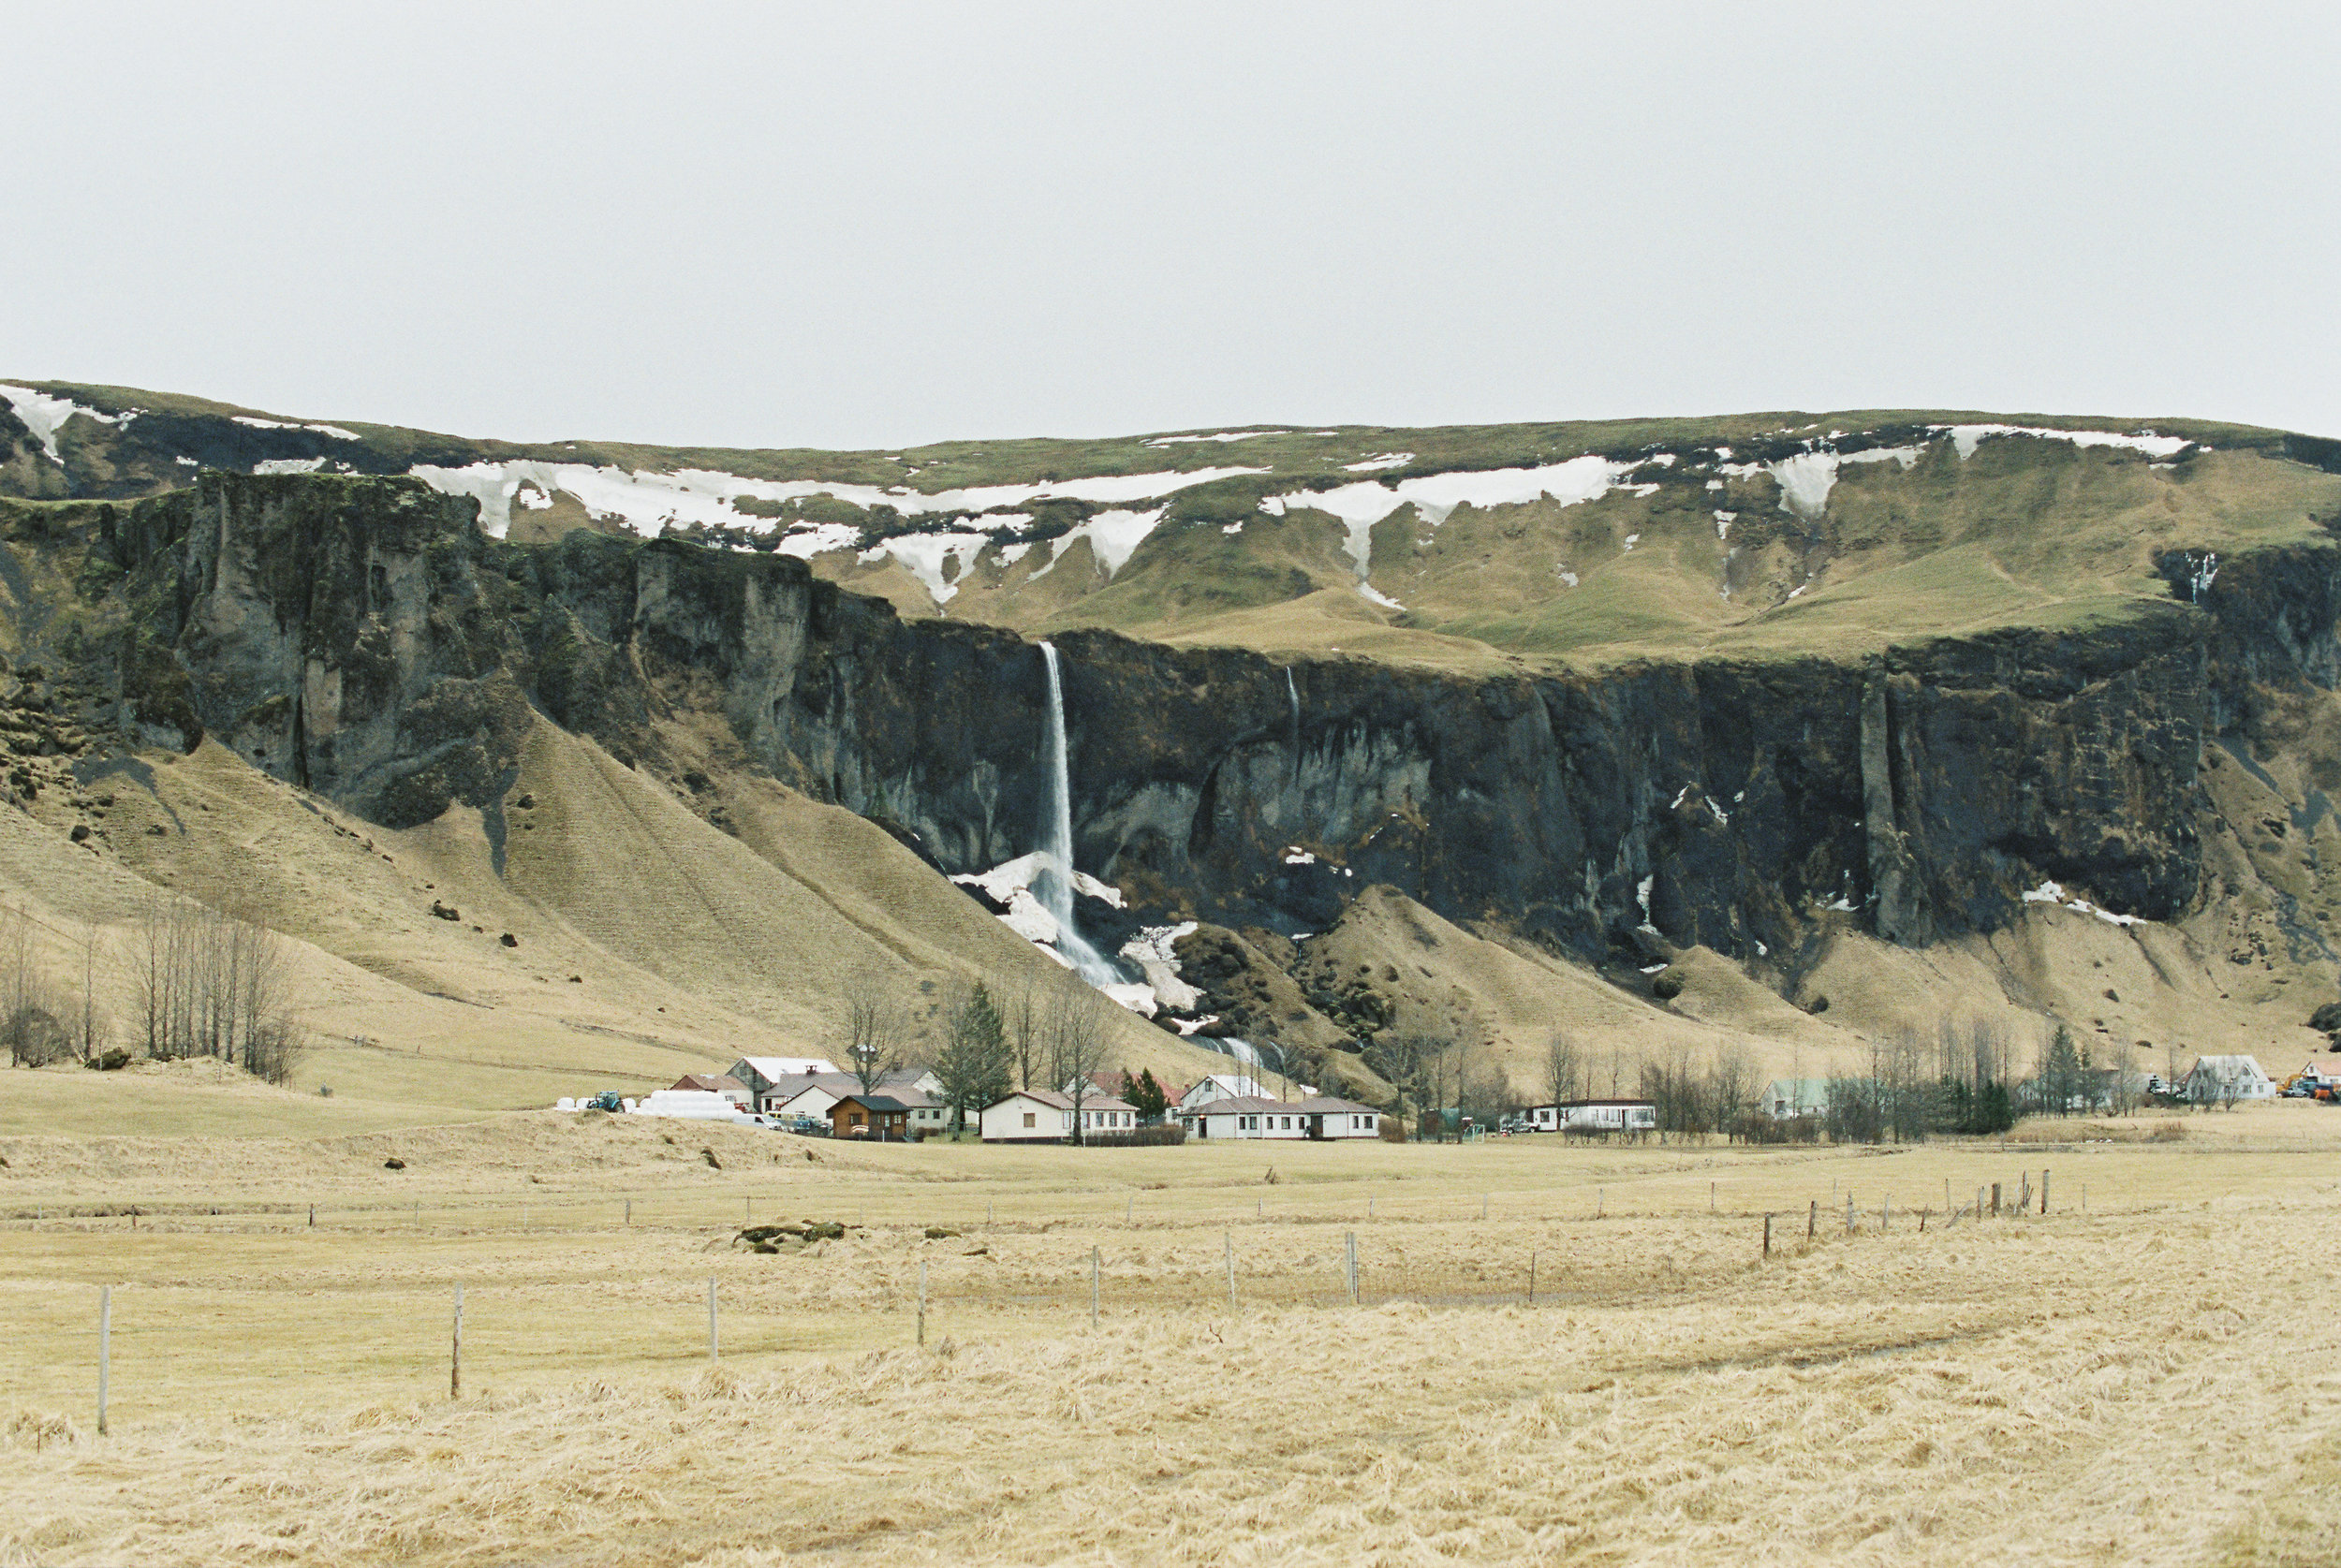 Brandon Sampson-Iceland-41402_24-5444 x 3647.jpg